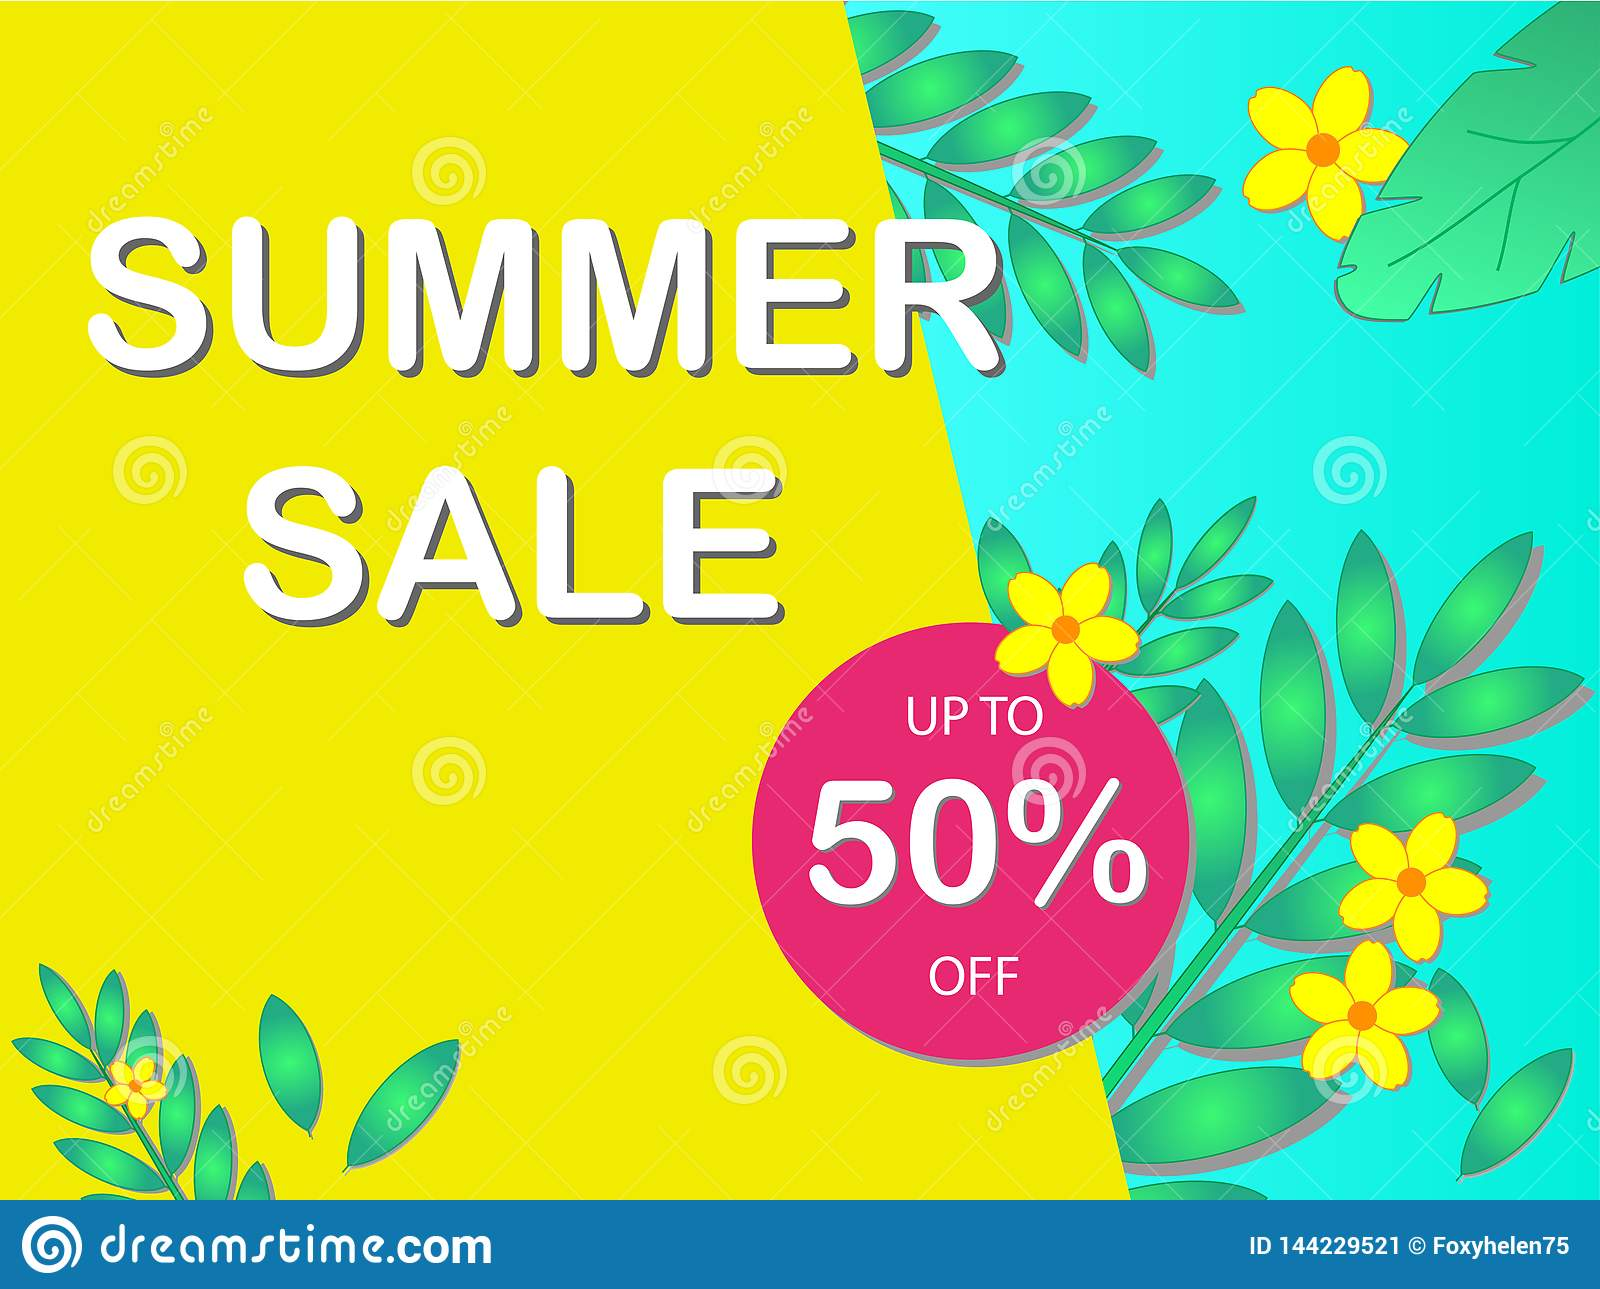 Sale concept banner with the text `Summer Sale` and discount percentage